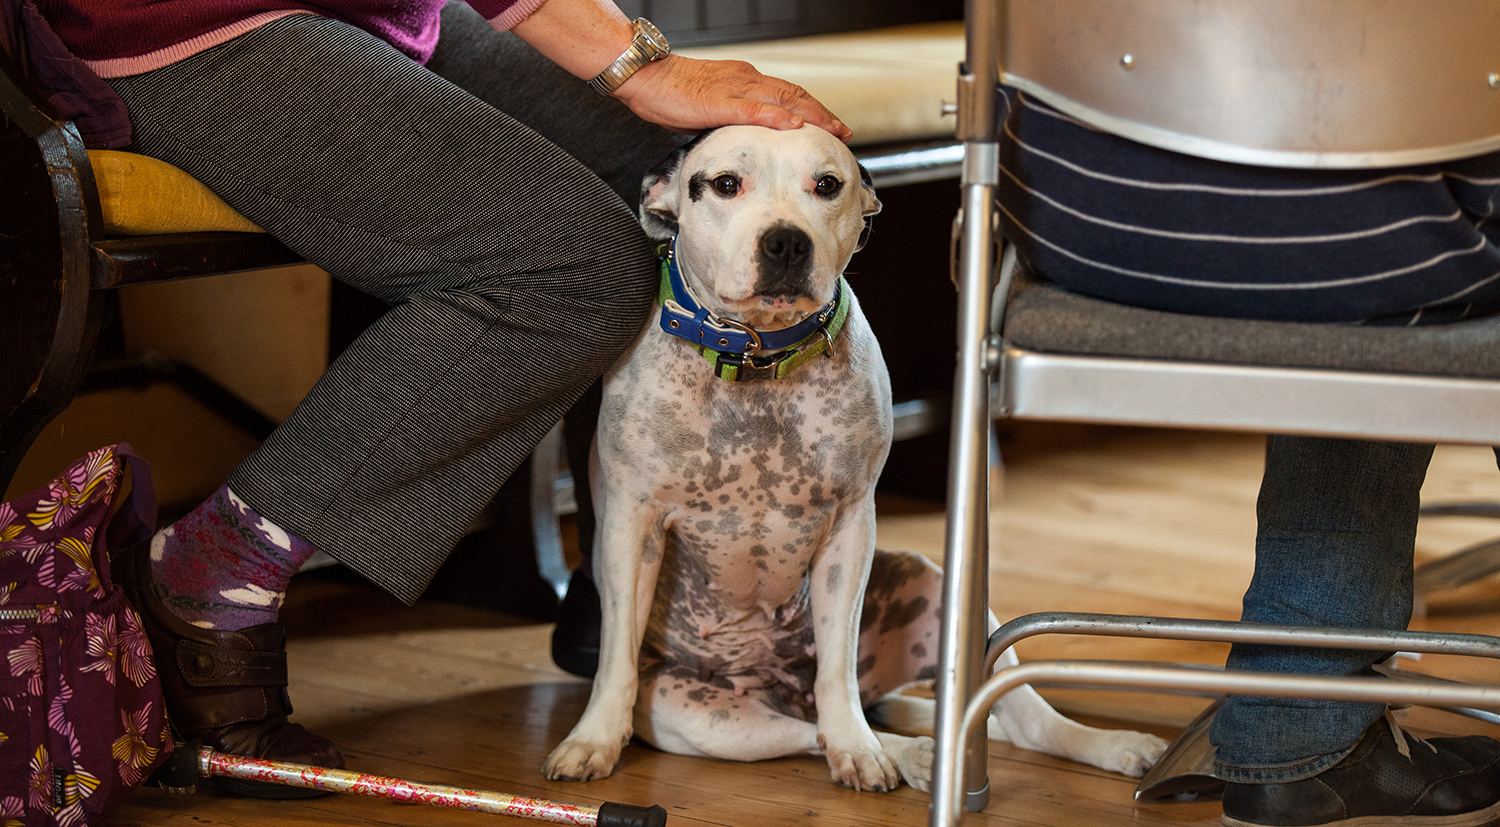 lewes-open-door-homeless-charity-dog_03a.jpg